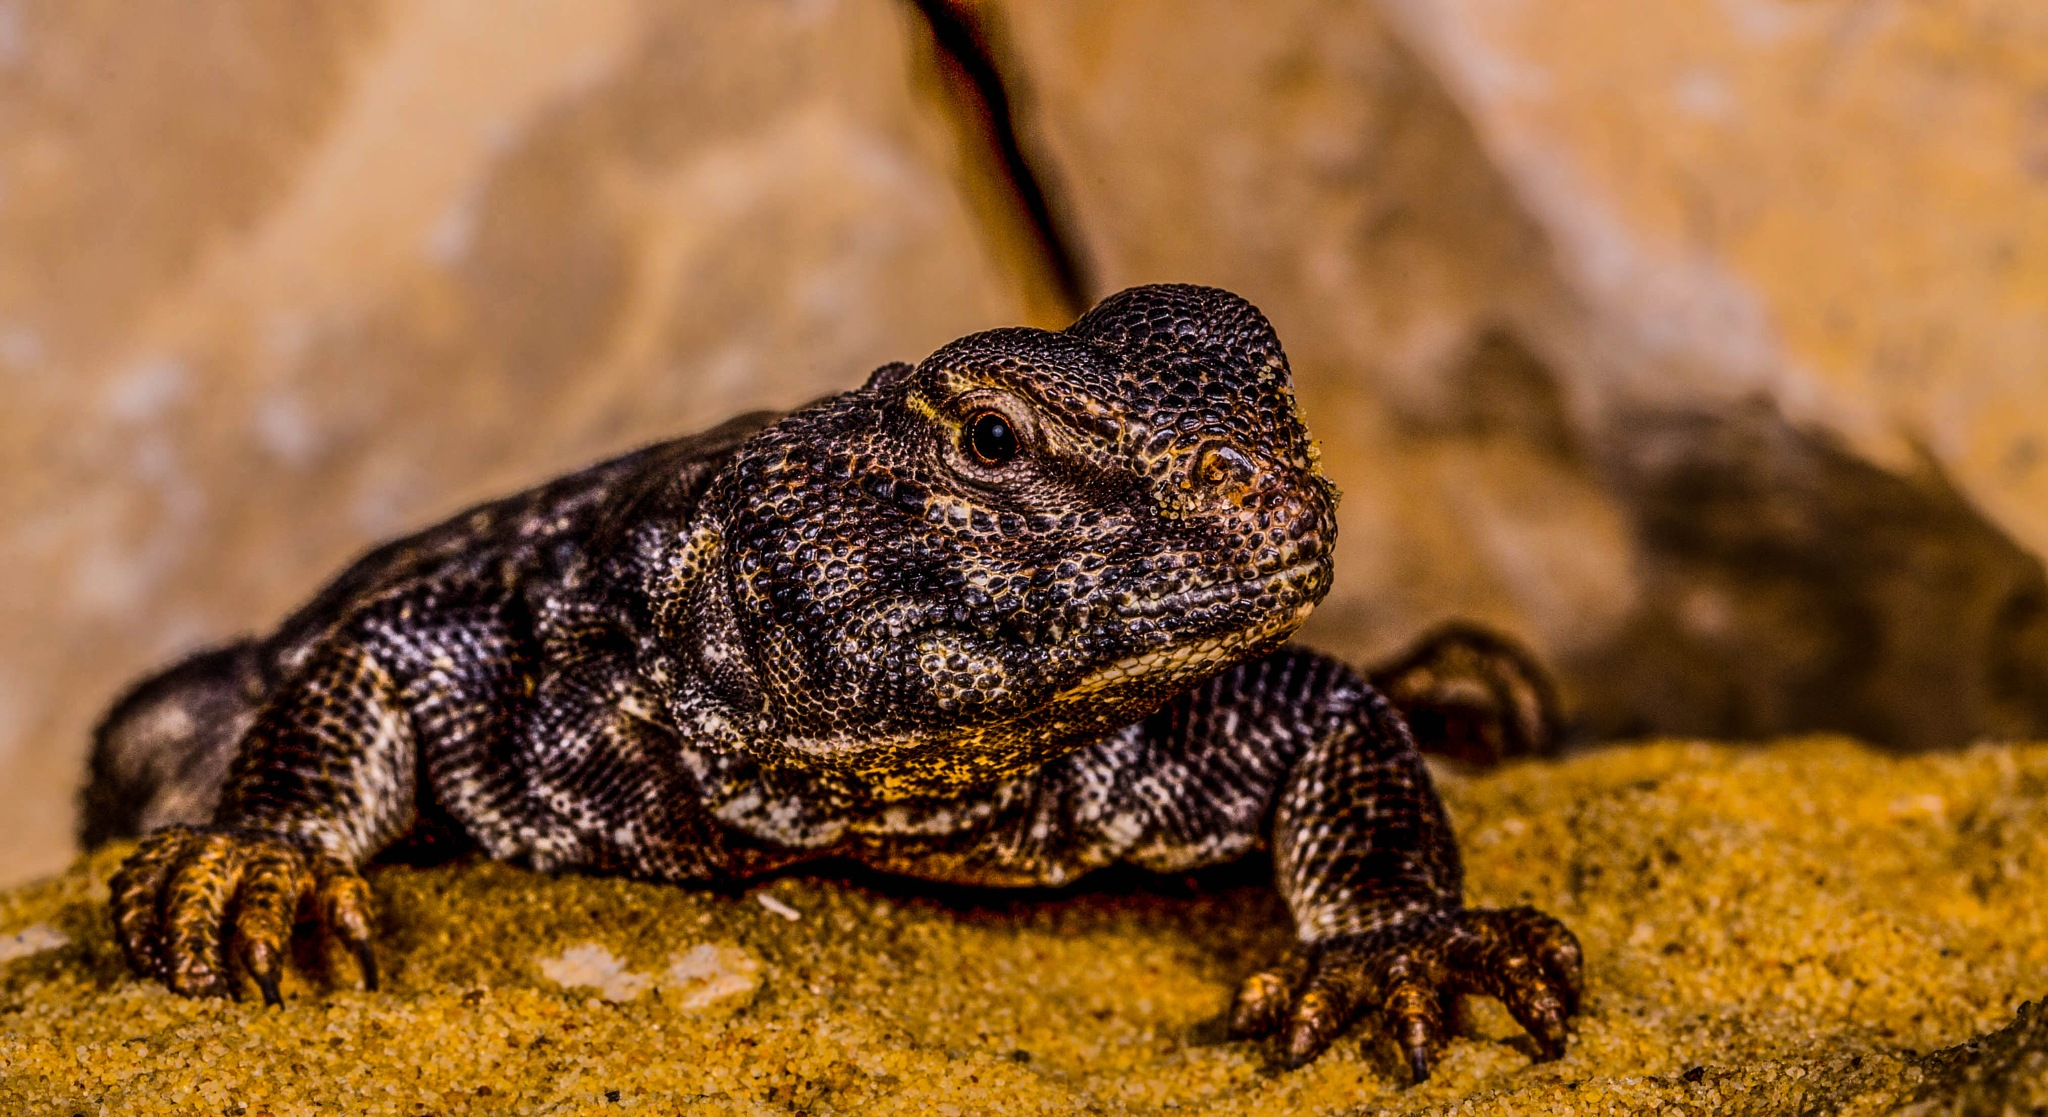 Lizard by garry-chisholm1